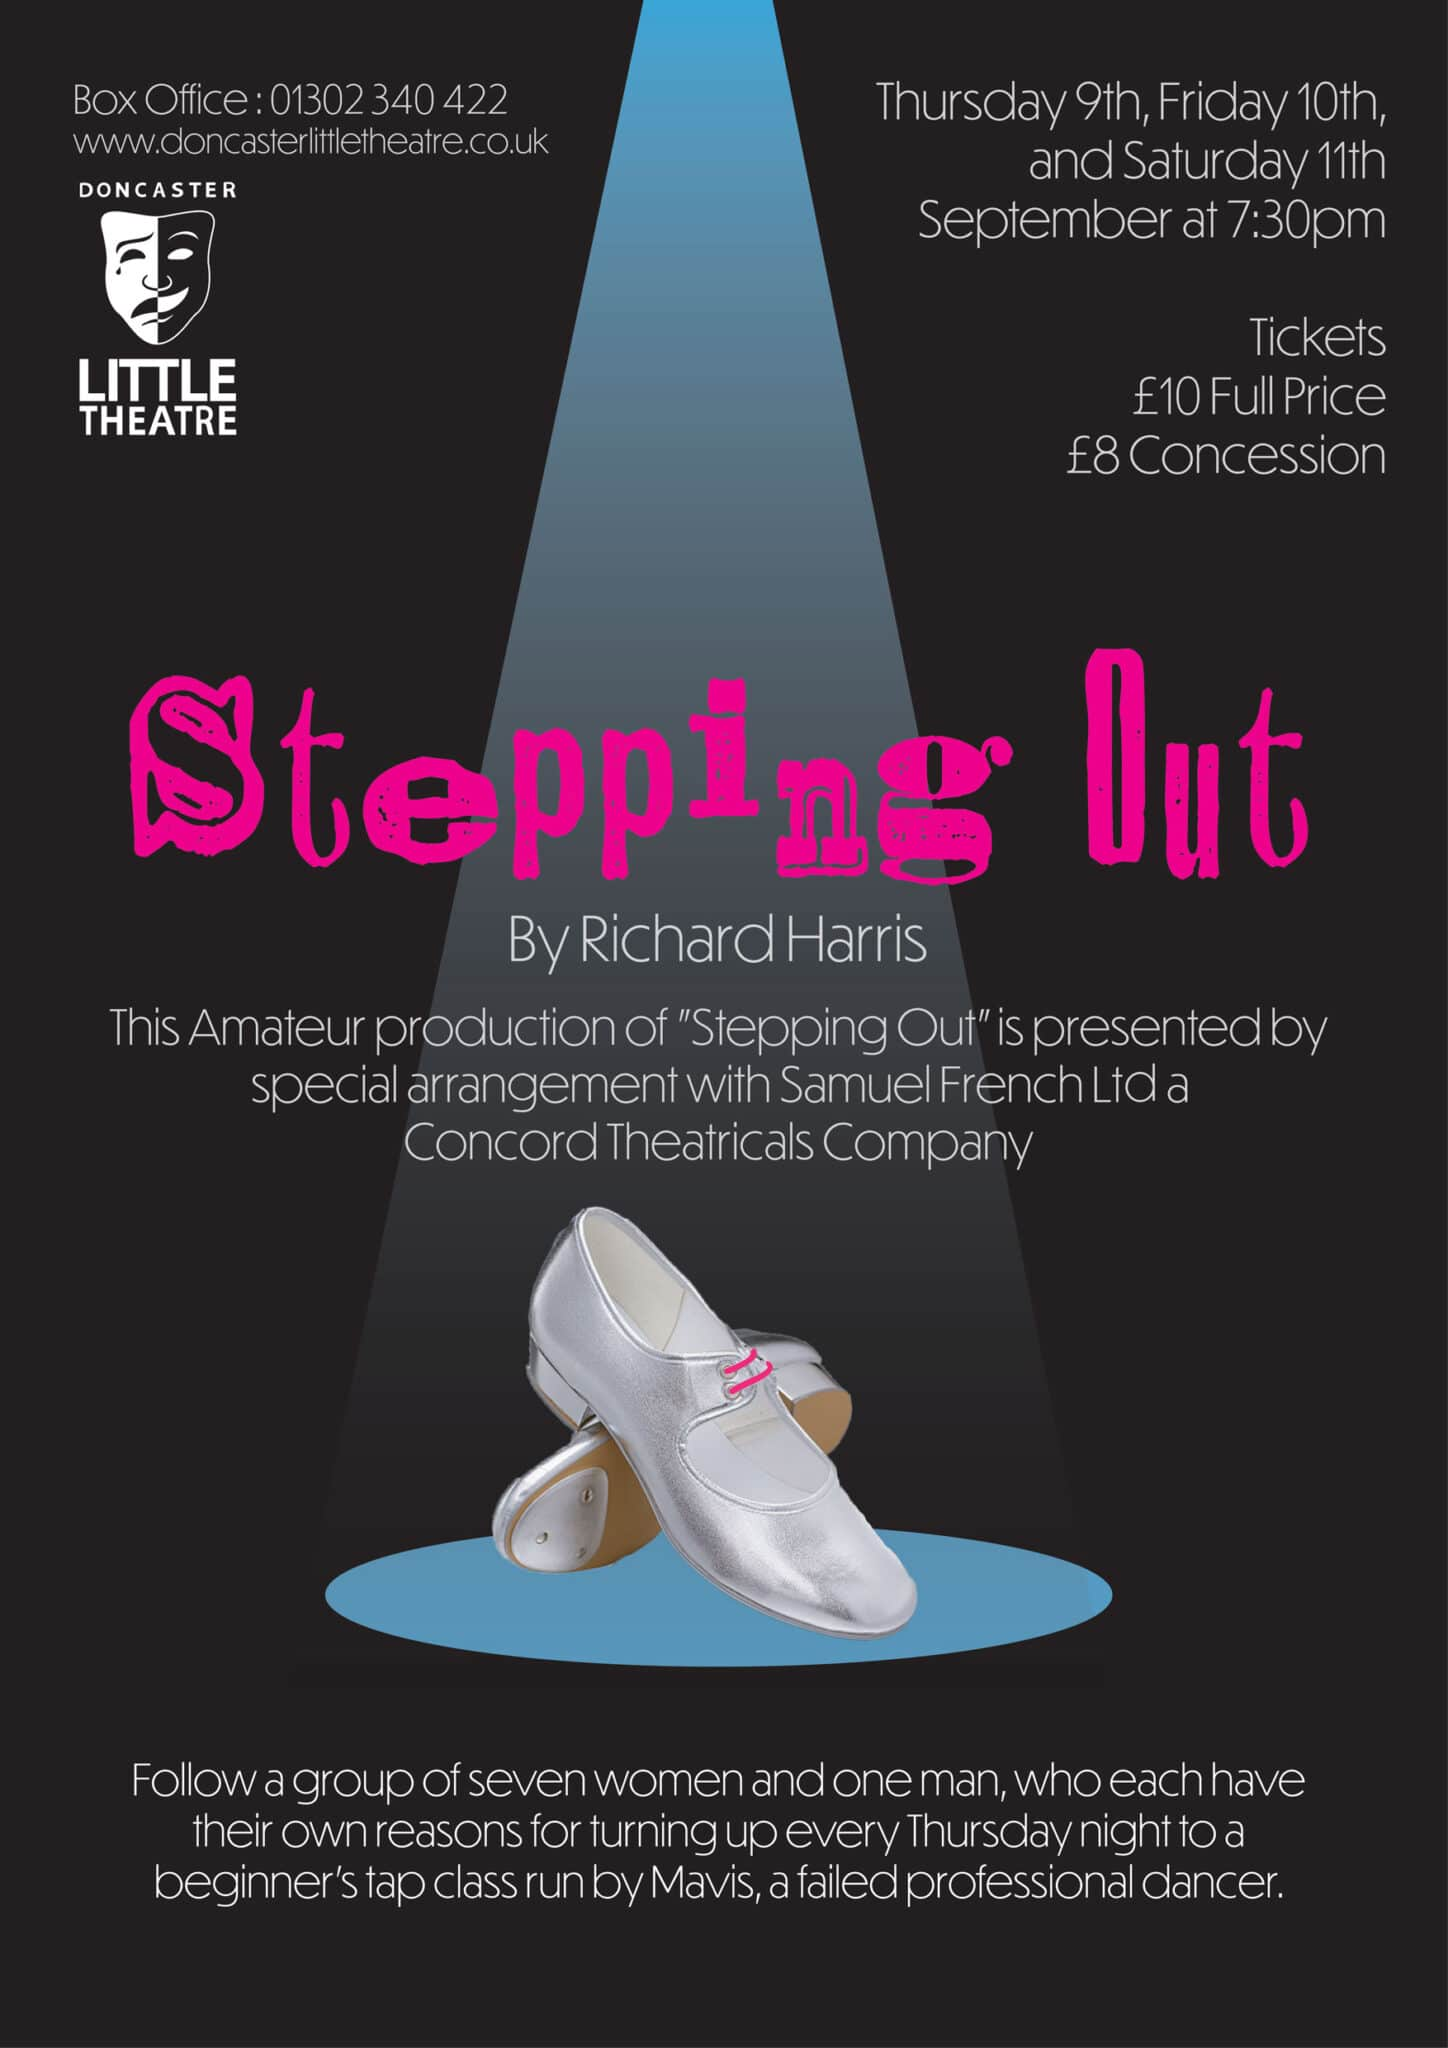 Stepping Out – A Little Theatre Production